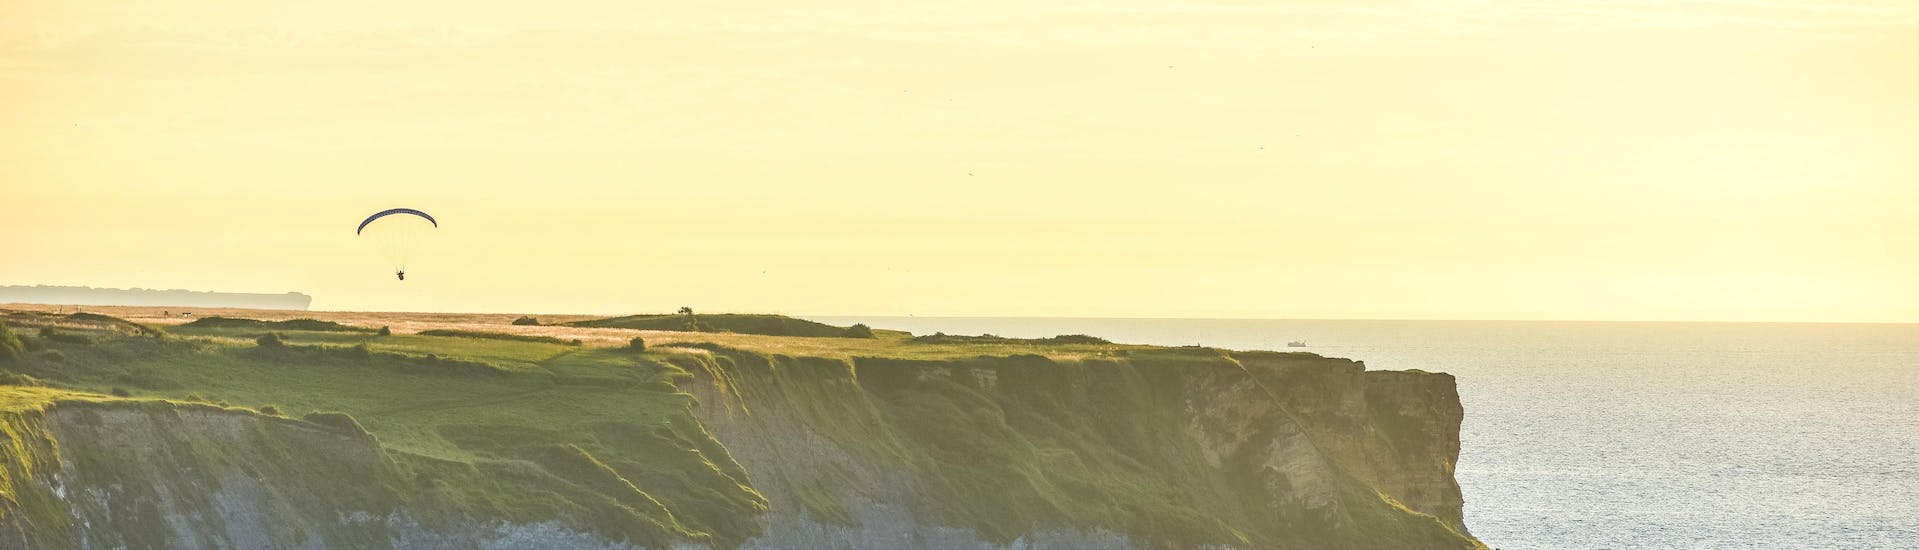 A man is doing a paragliding flight over the cliffs overlooking the sea in Normandy.